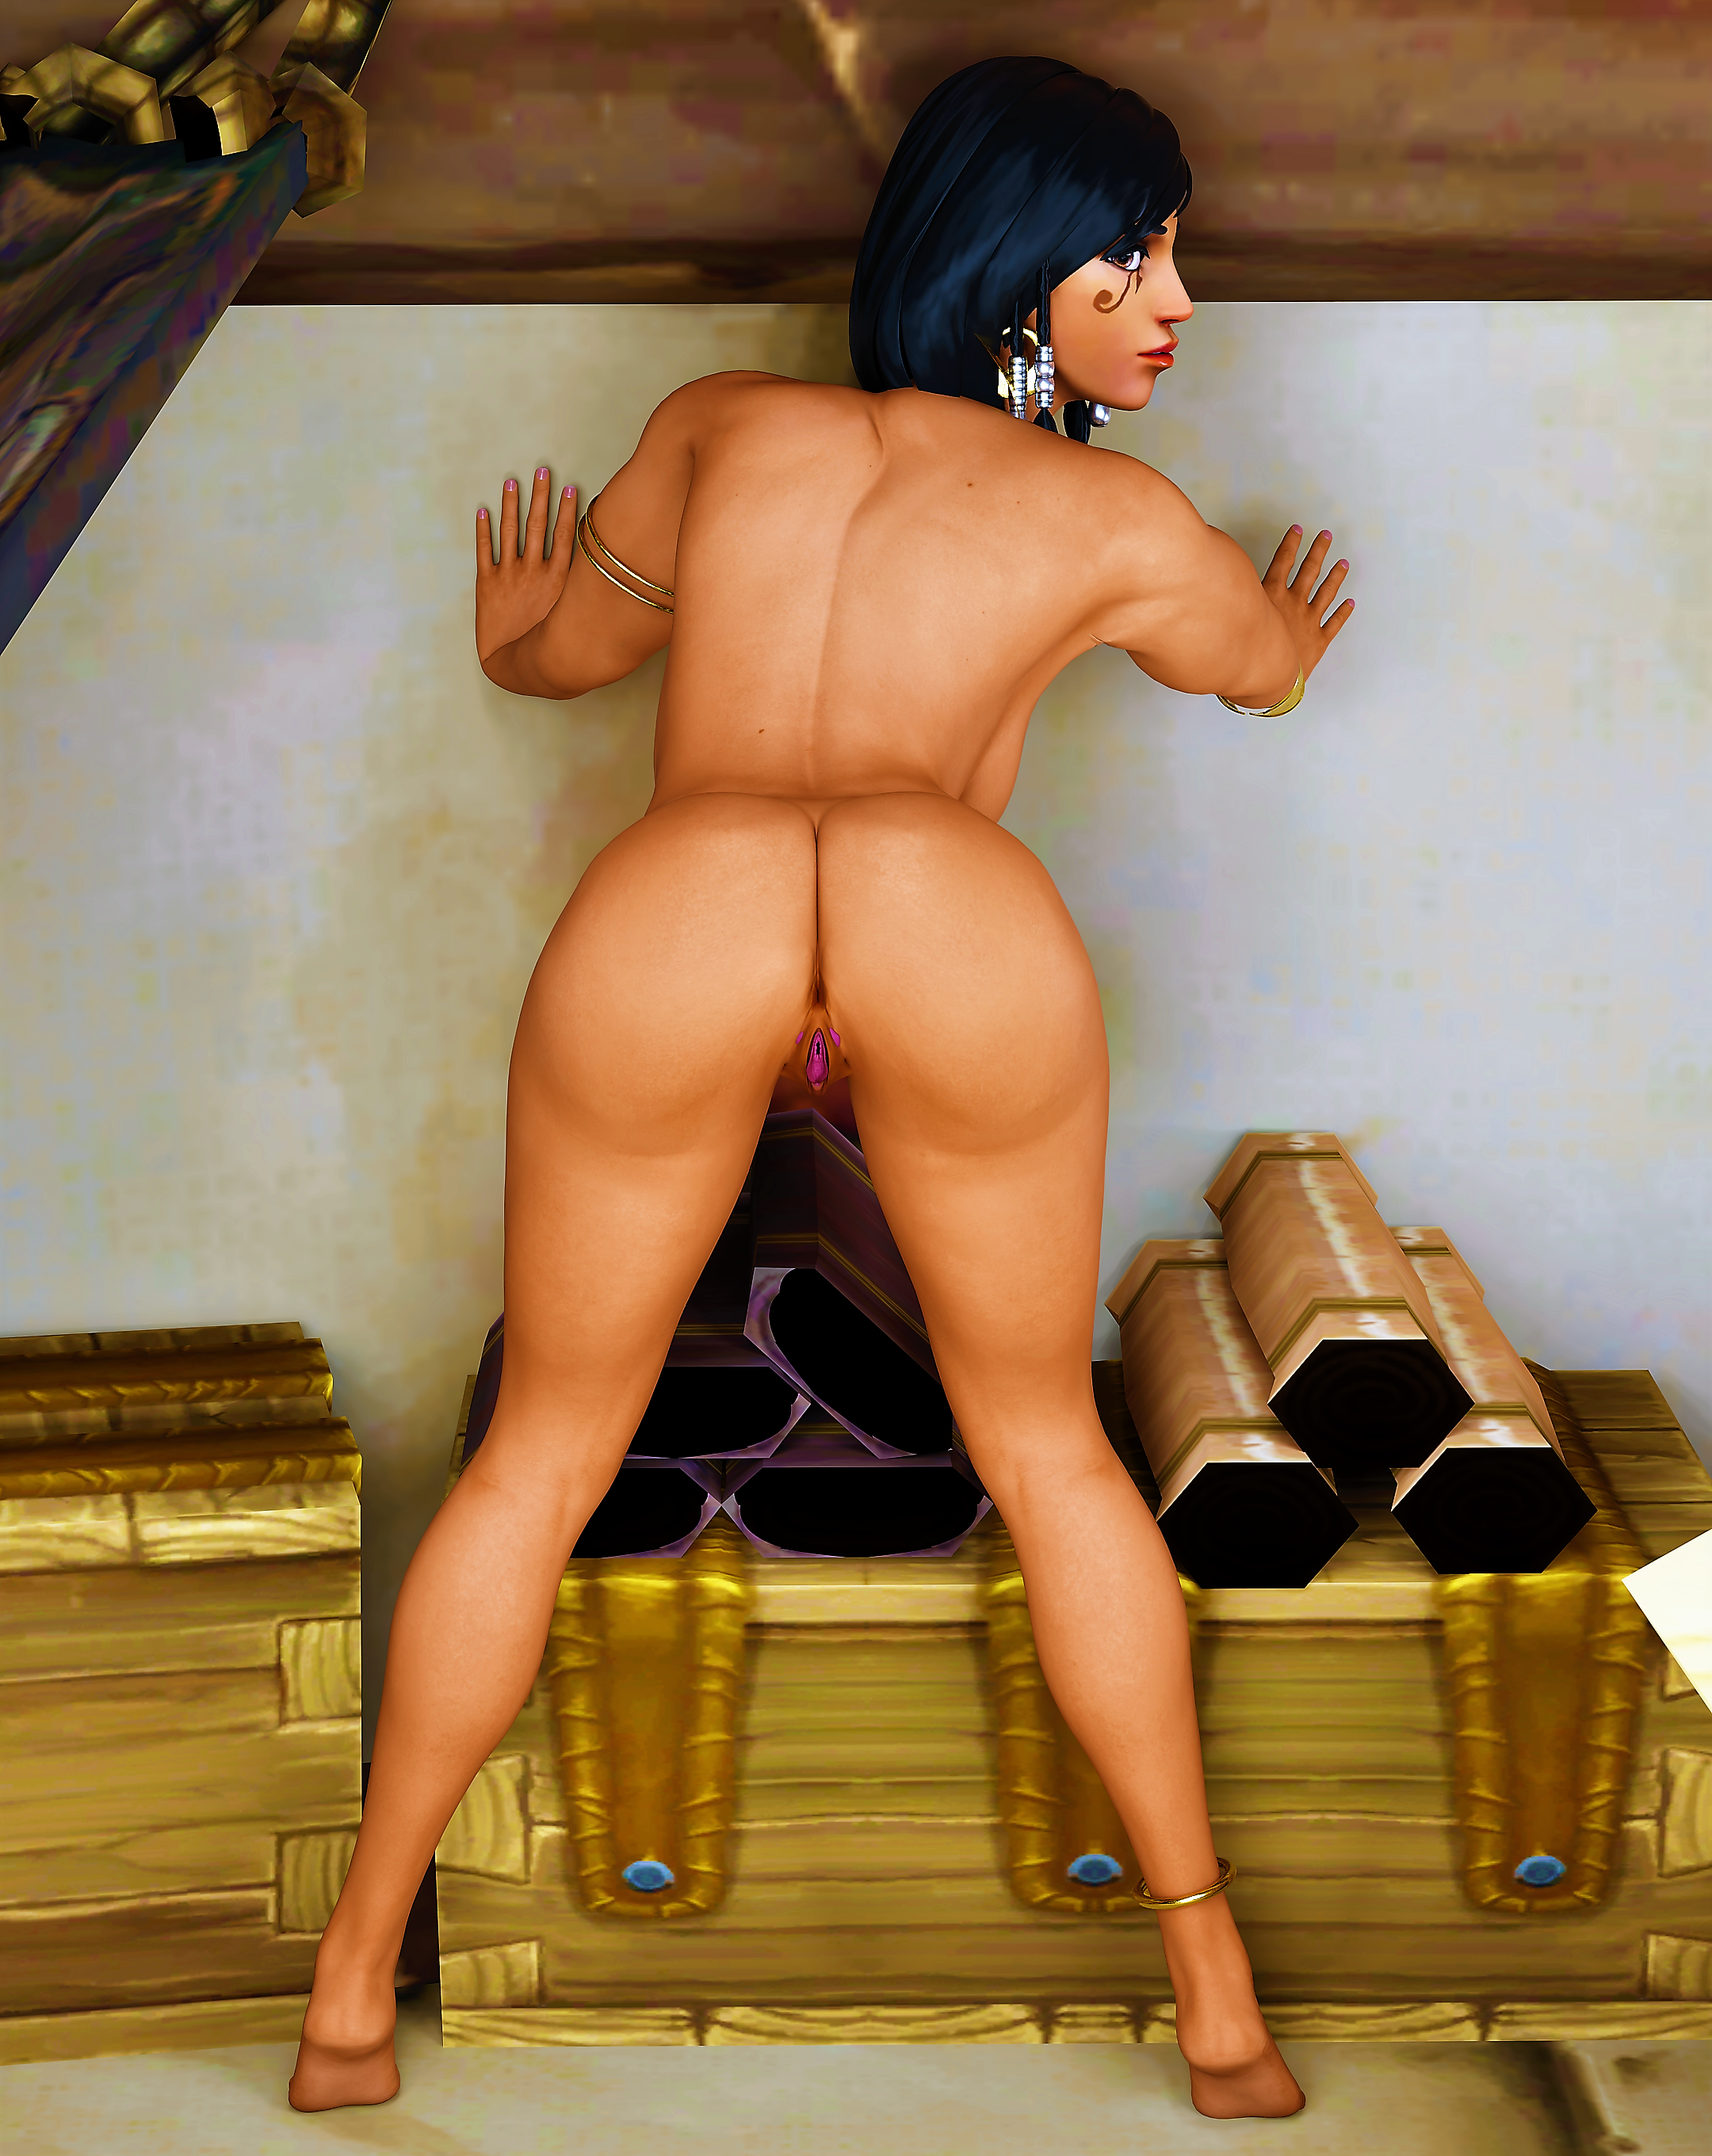 3252961 - Cyberslueth166 Overlook Pharah blender